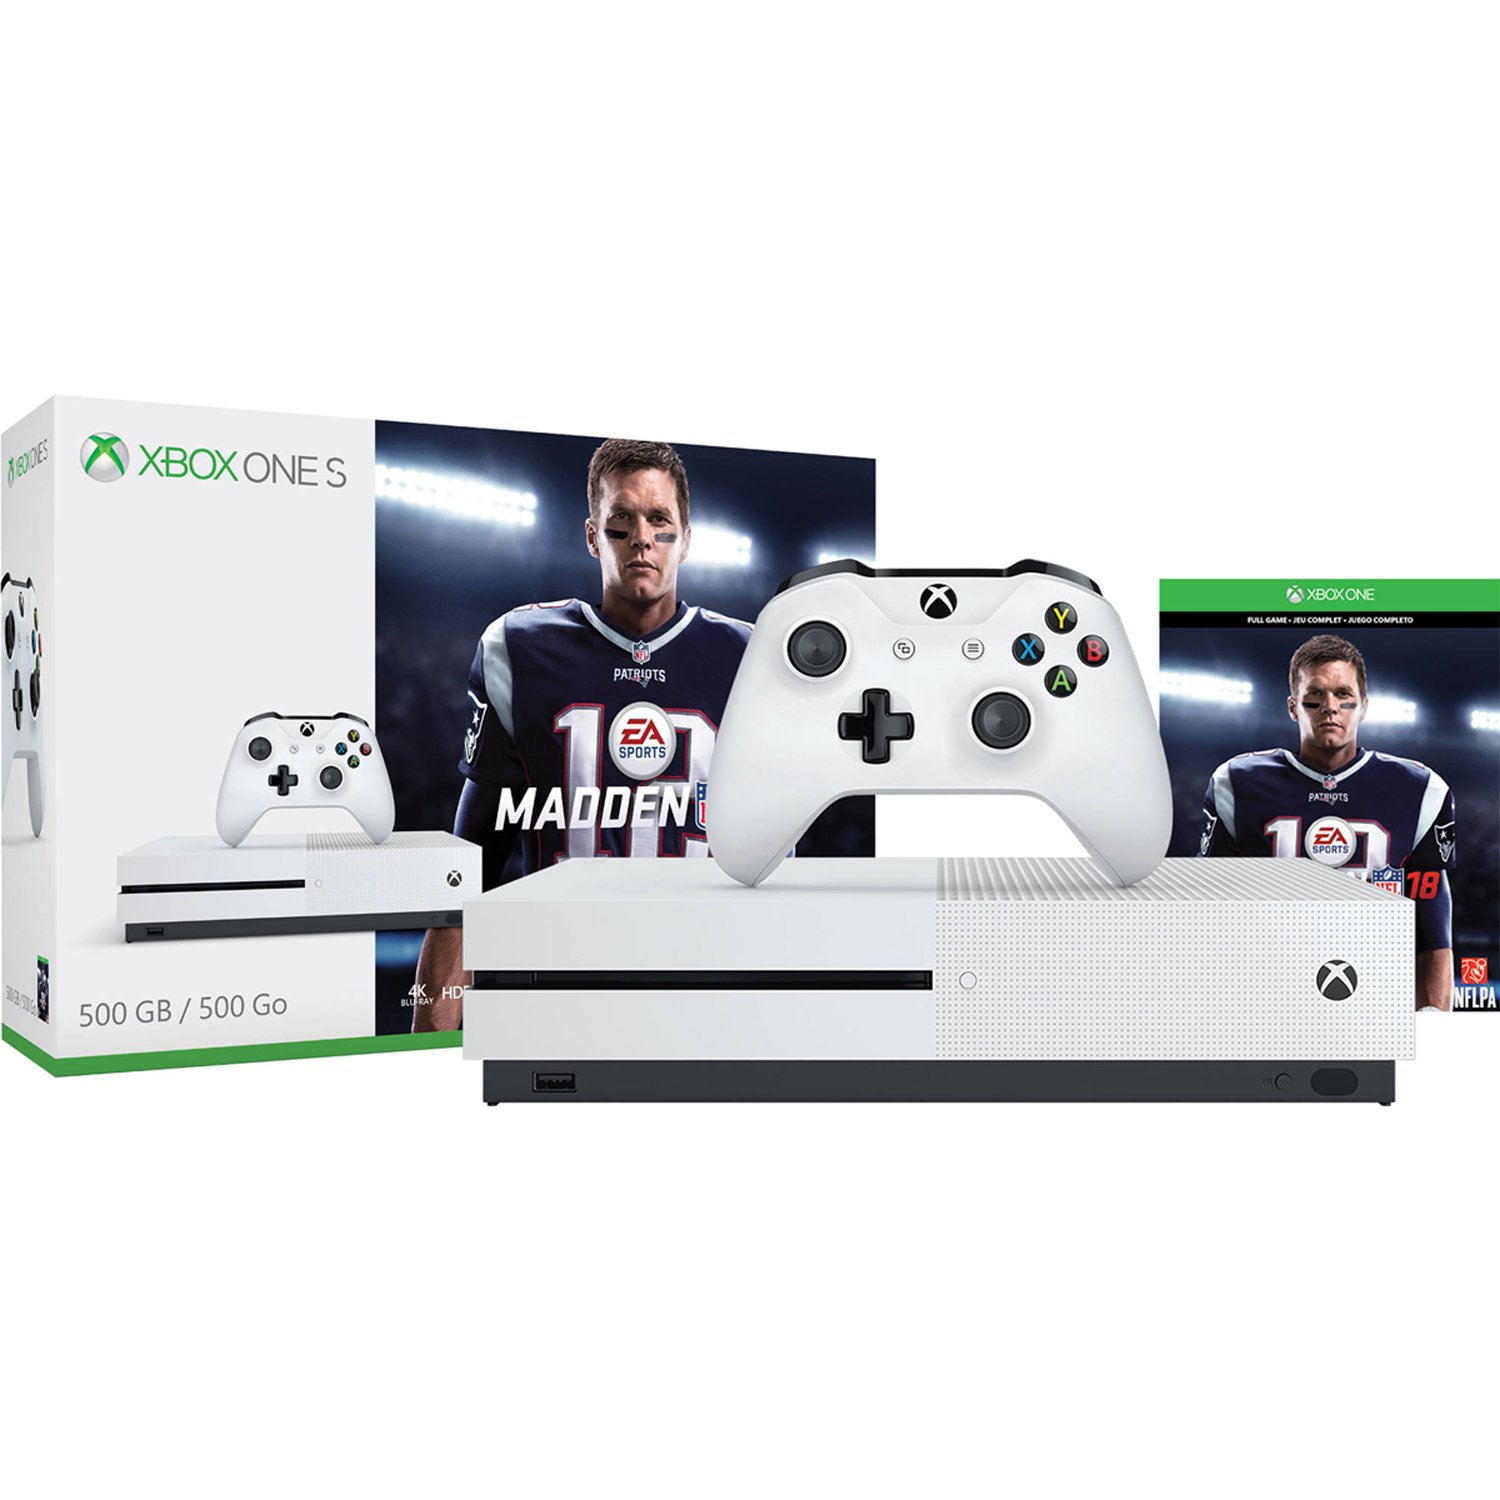 Xbox One S 500GB Console - Madden NFL 18 Bundle [Discontinued] by Microsoft